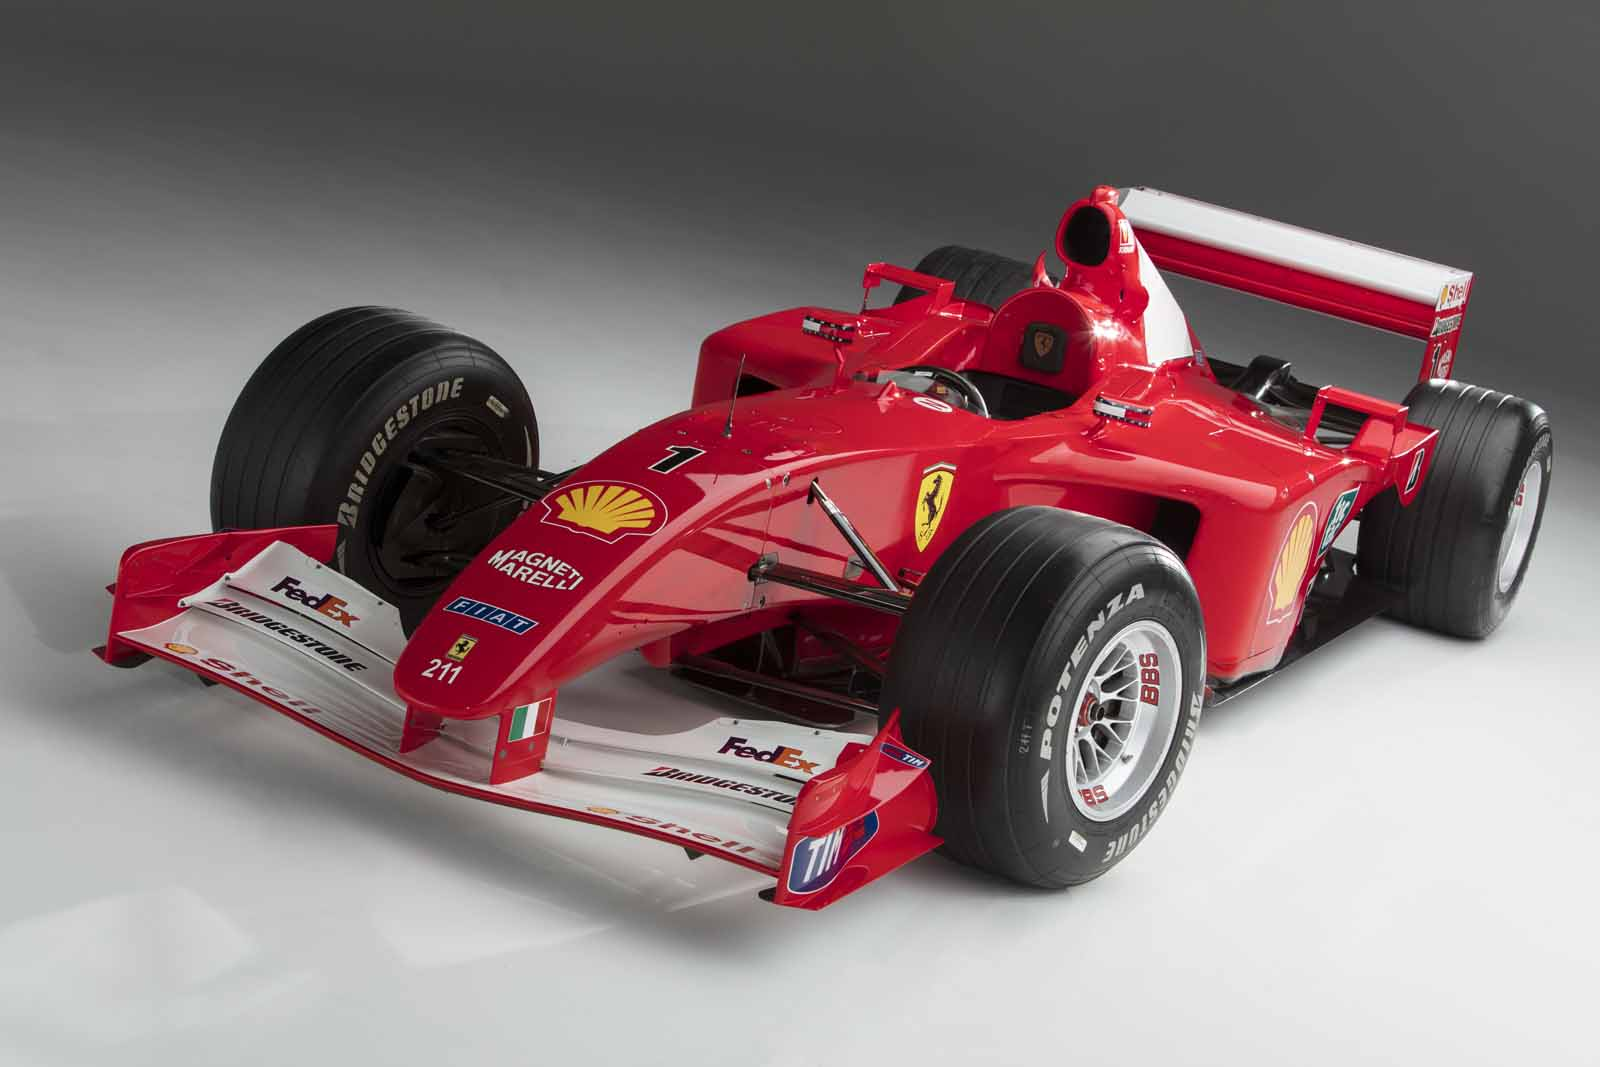 ferrari f2001 michael schumacher - photo #5